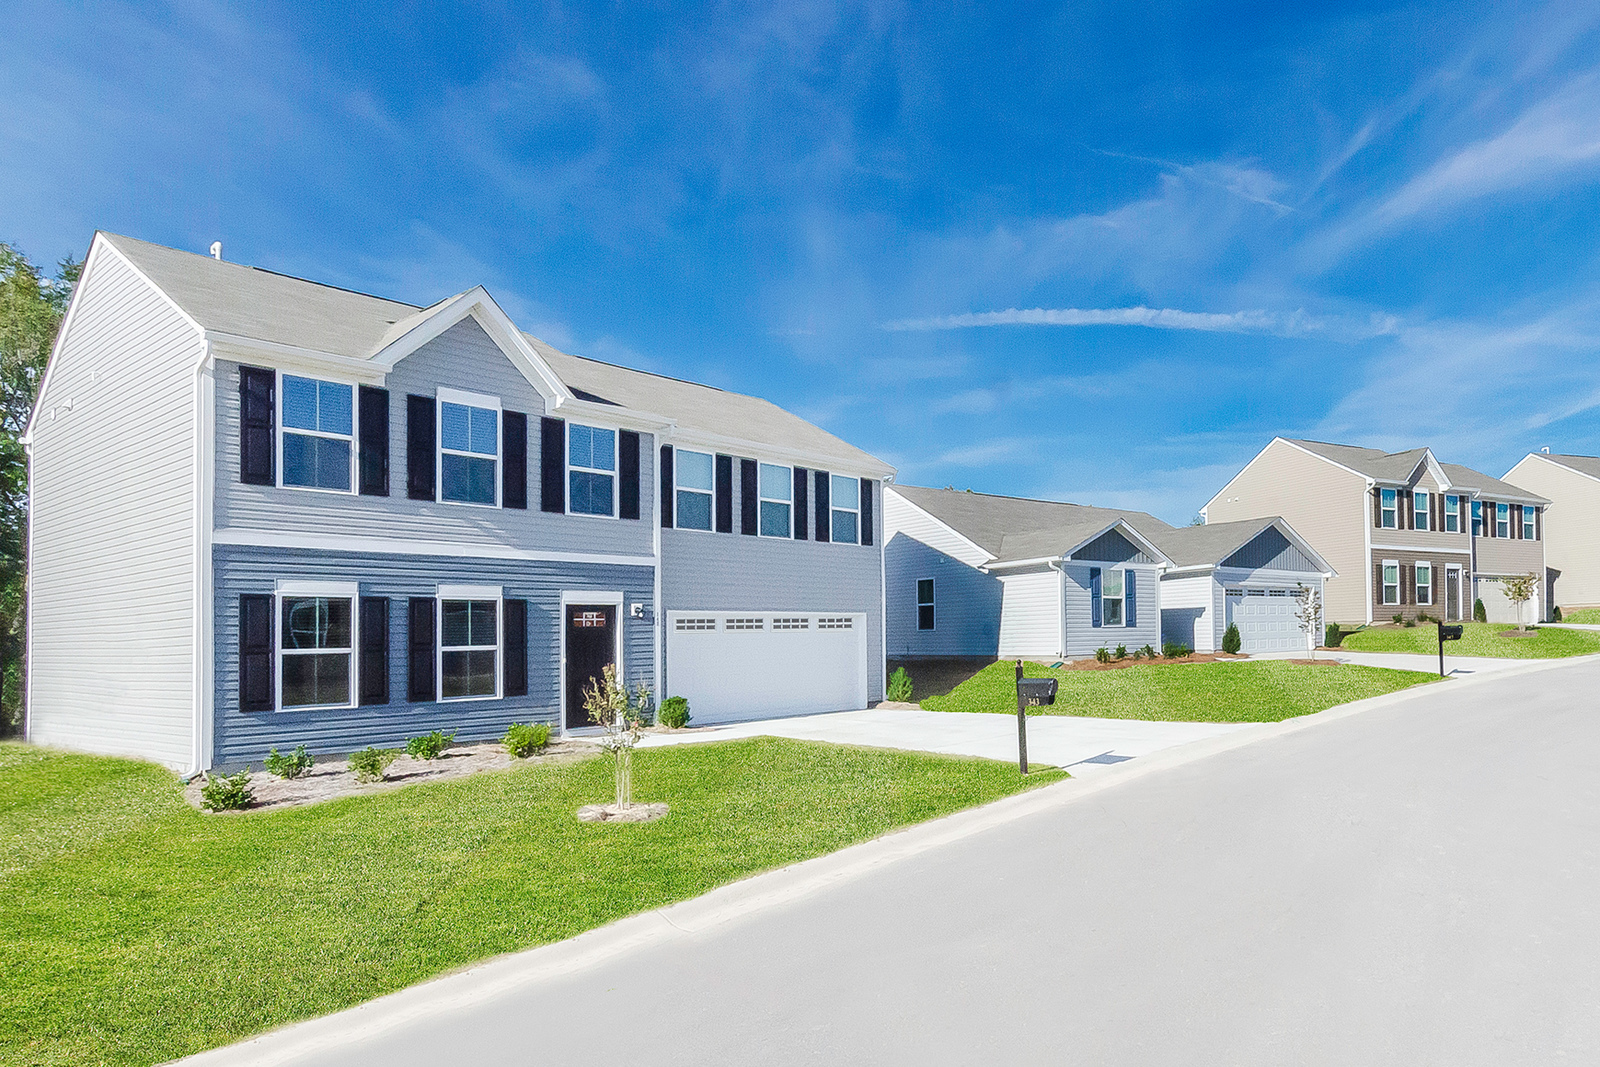 New homes for sale at park at lakeside in richmond va within the a new community of single family homes with 2 car garages in the lakeside solutioingenieria Images